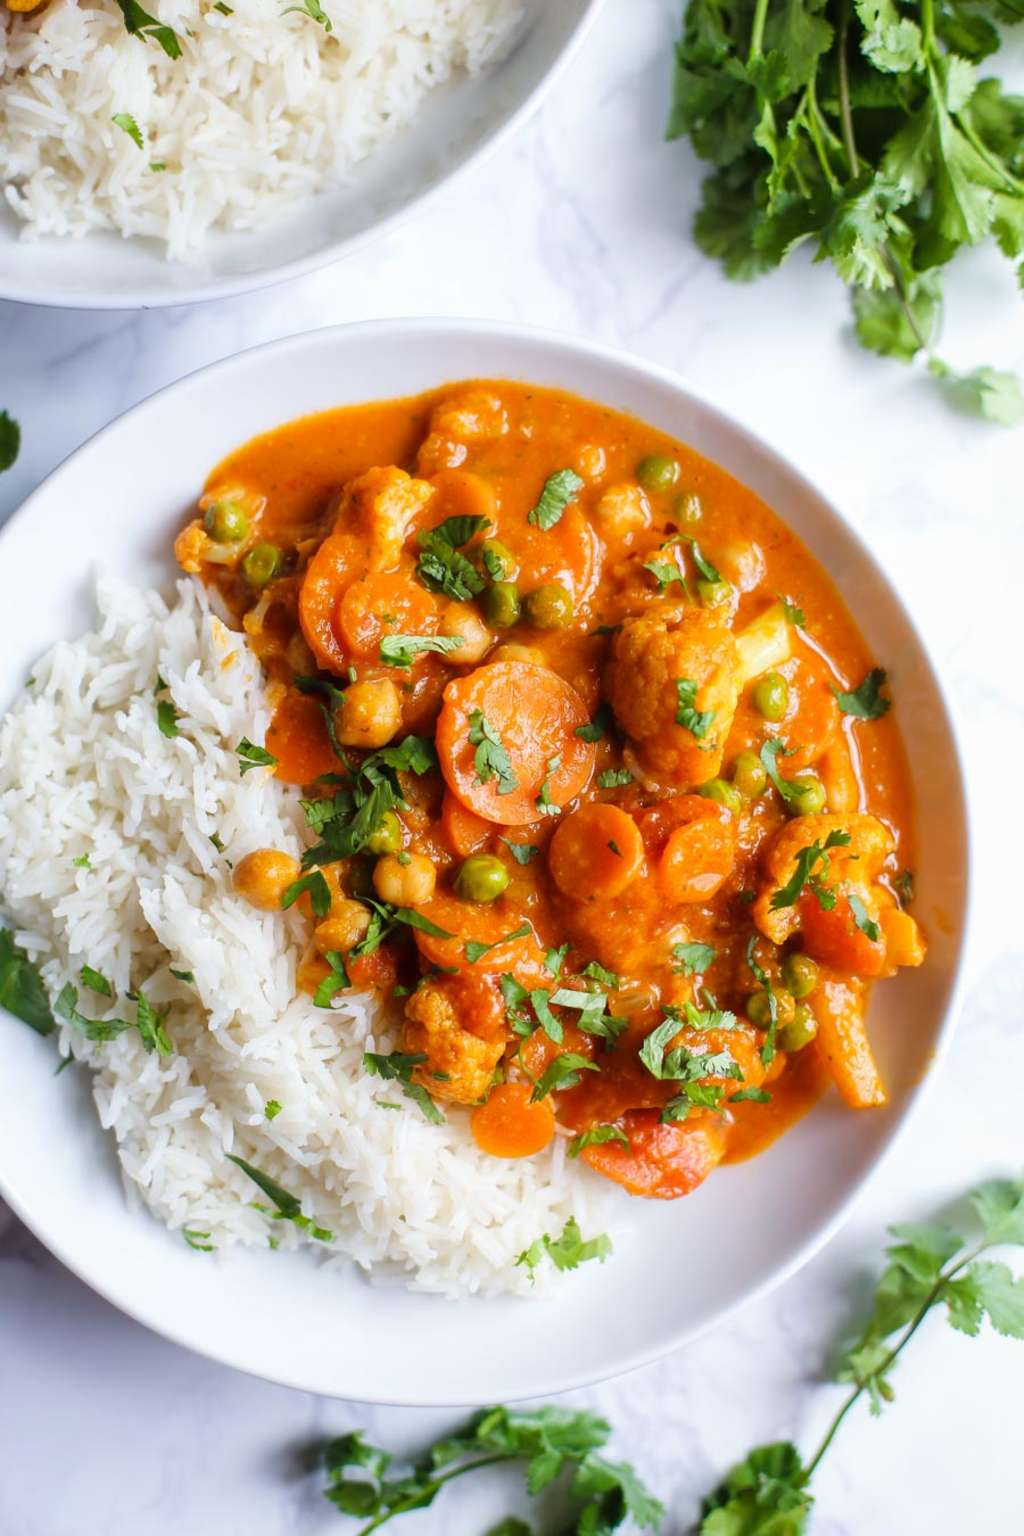 Eat Your Veggies with This Super Tasty Tikka Masala